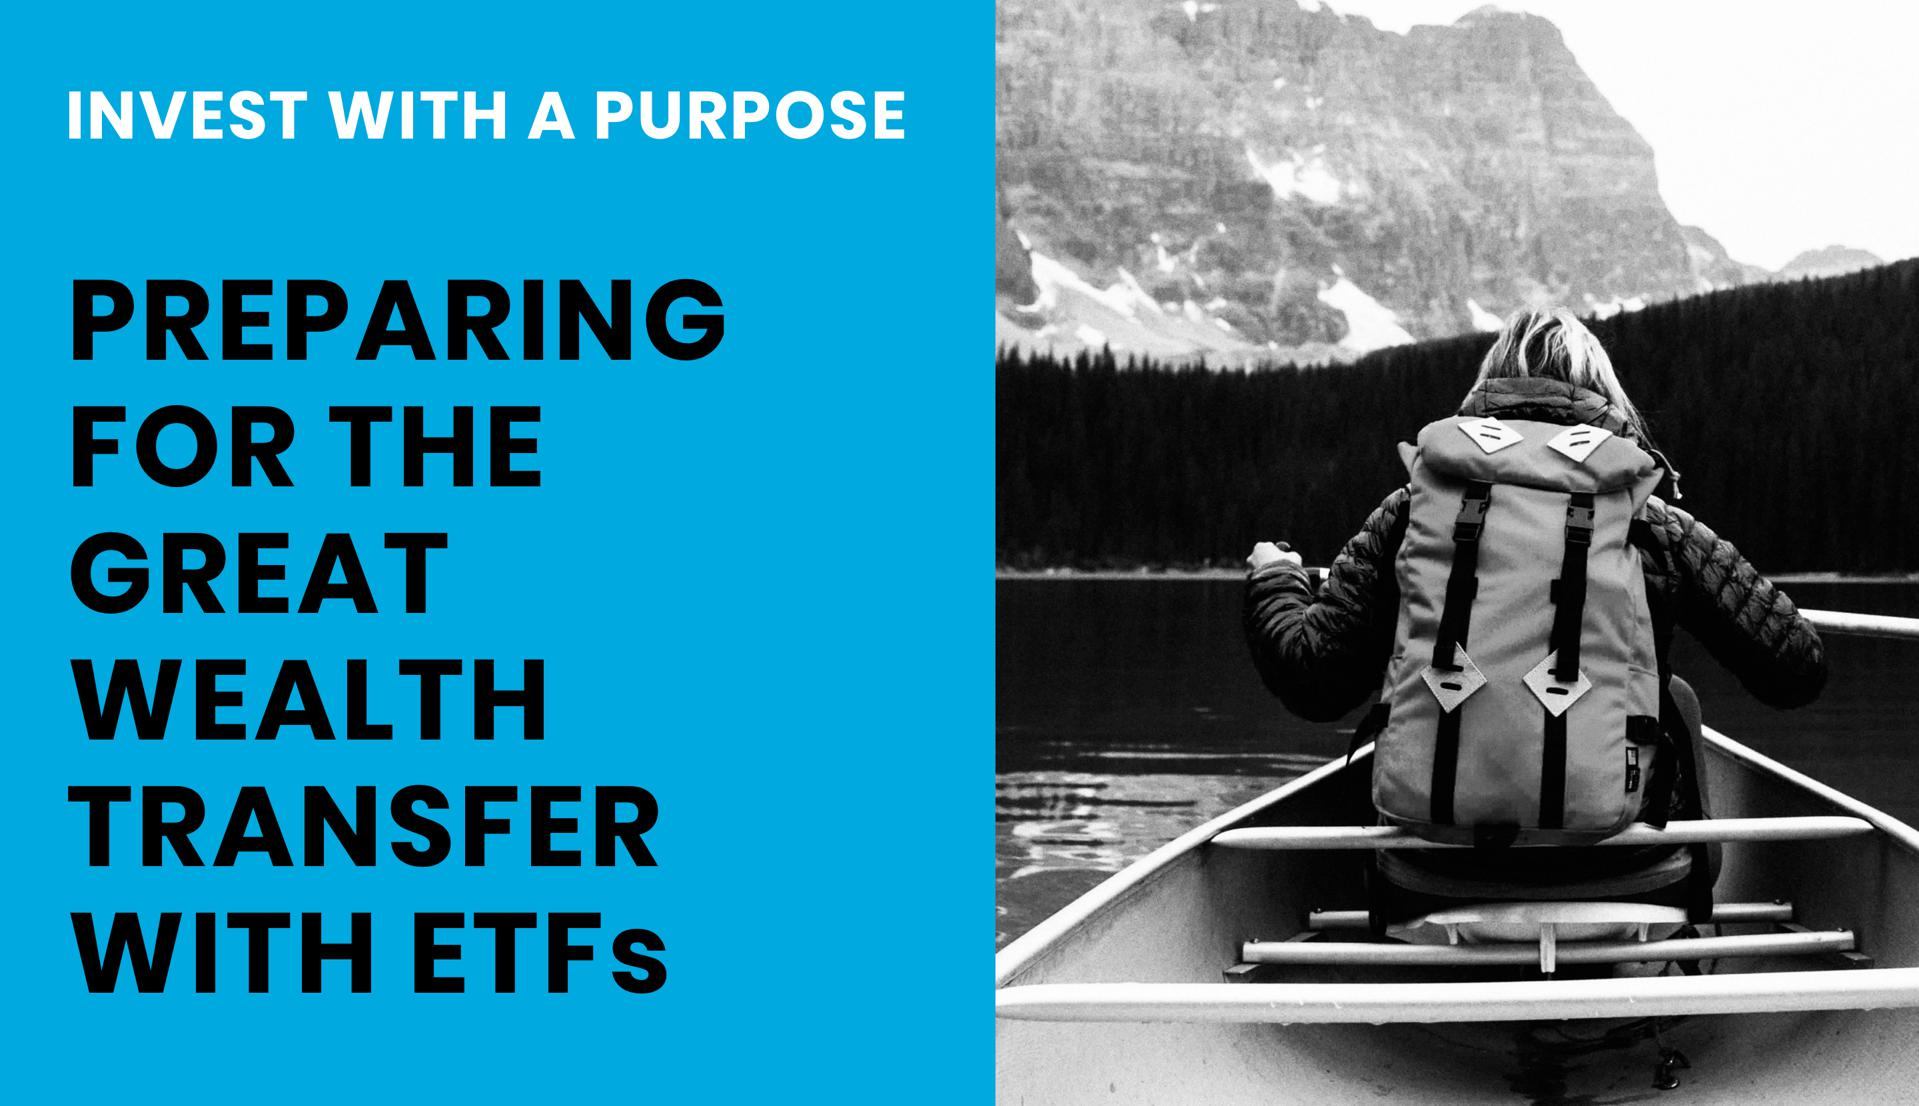 Invest With A Purpose: Preparing For The Great Wealth Transfer With ETFs